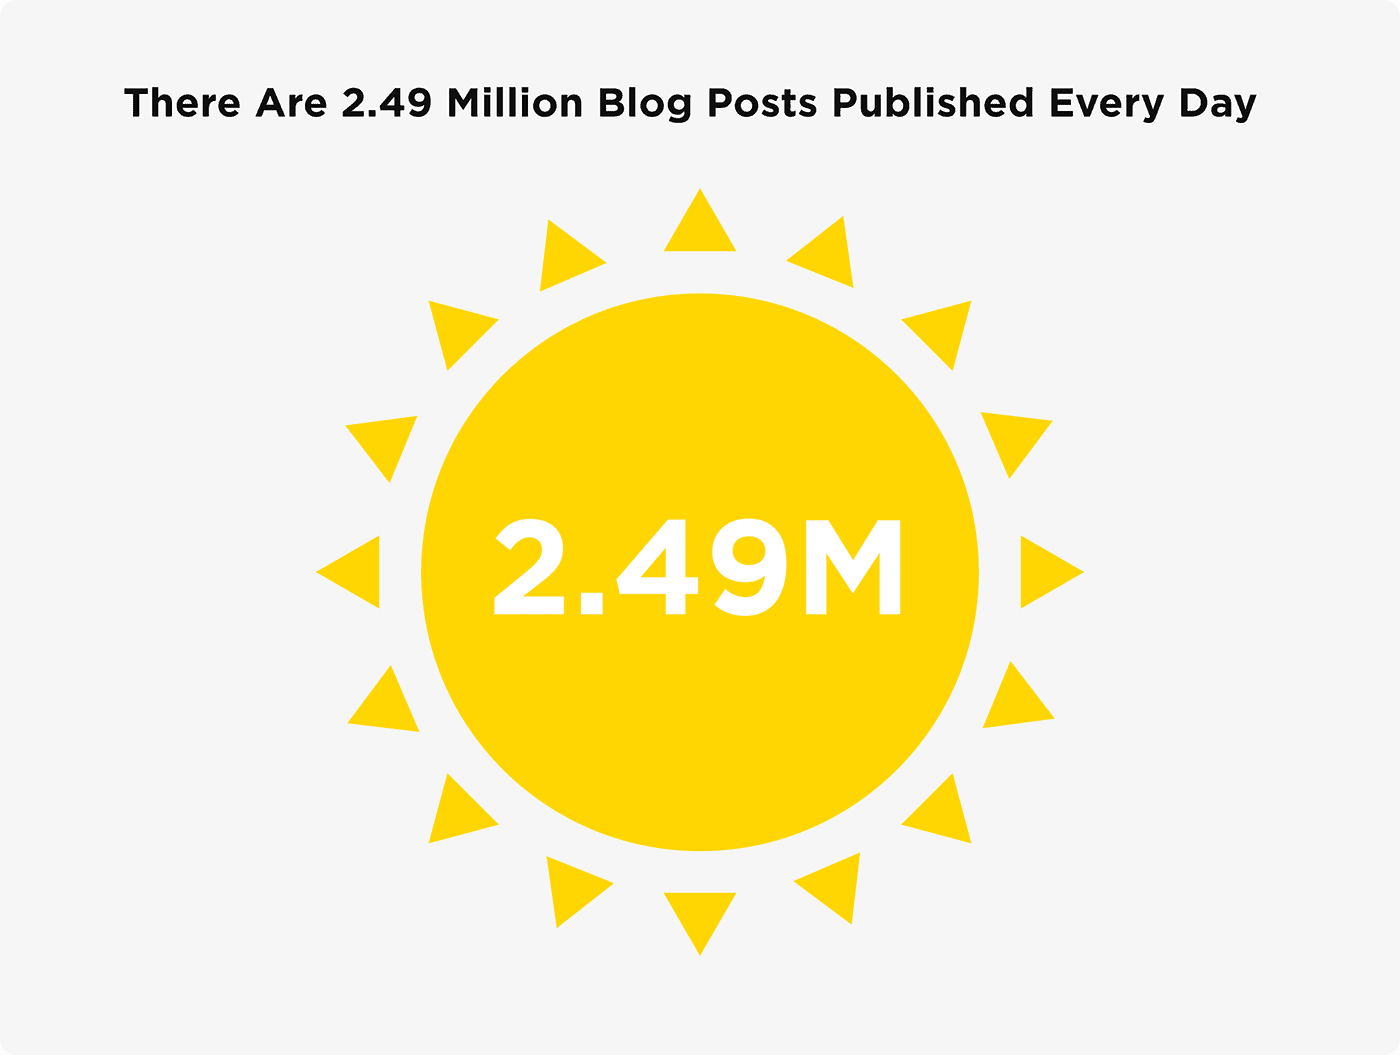 There are 2.49 million blog posts published every day